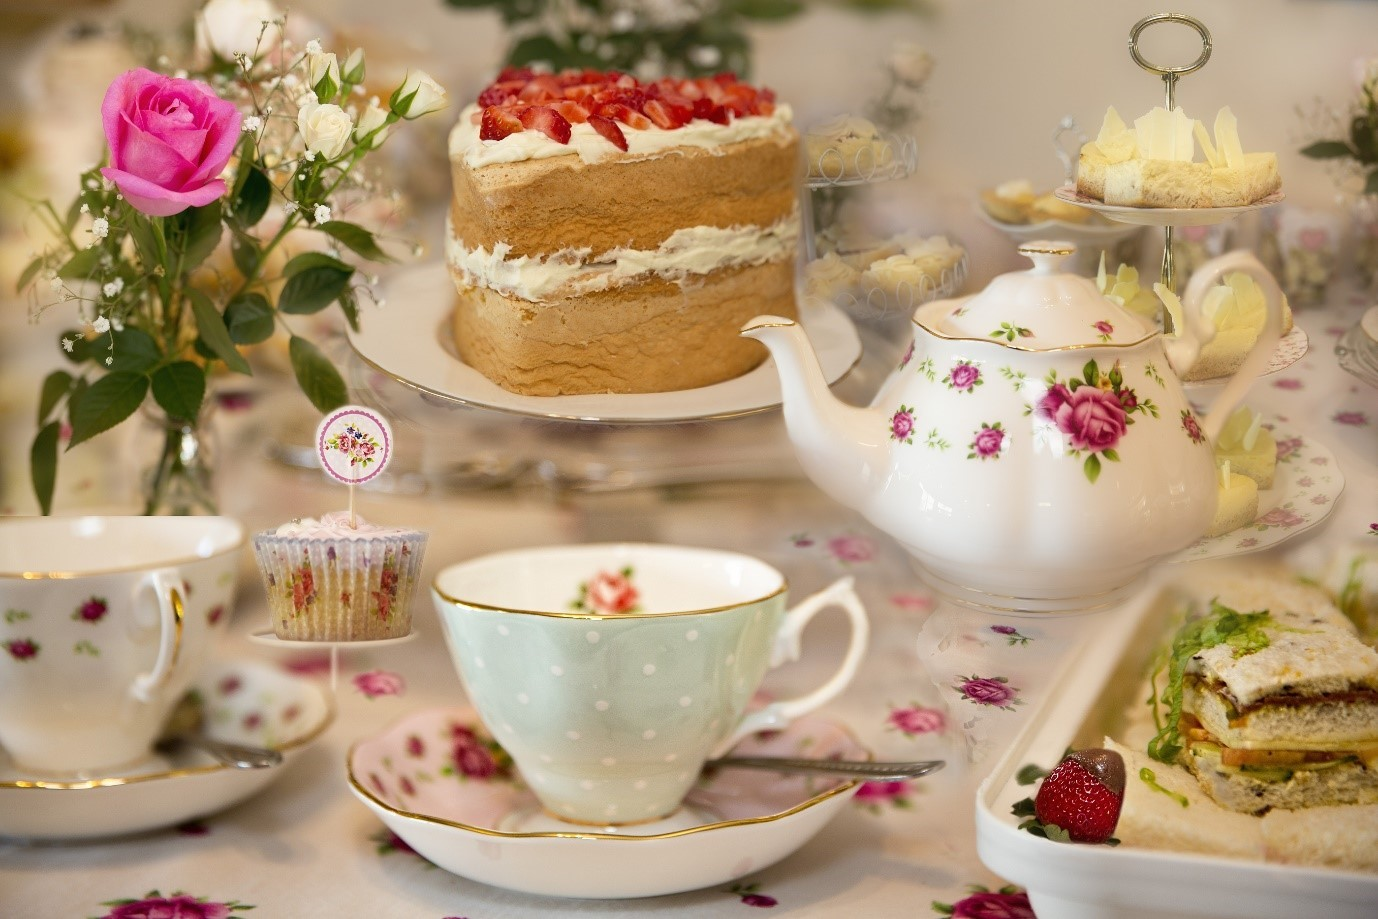 Dog-friendly afternoon tea places in Whitby